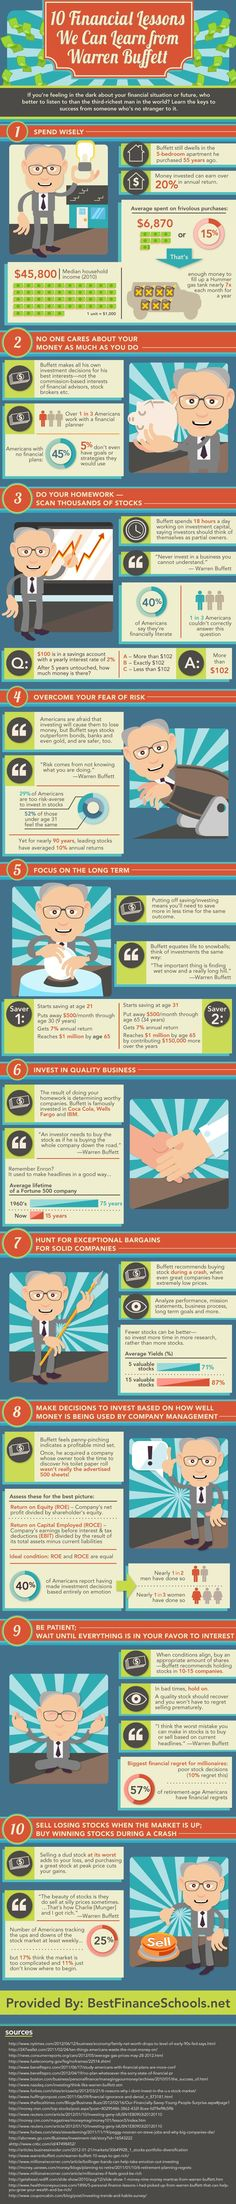 10 Money Lessons Warren Buffett Can Teach Us    Read more: http://www.businessinsider.com/10-financial-lessons-we-can-learn-from-warren-buffett-infographic-2012-8#ixzz22dIEIKtB